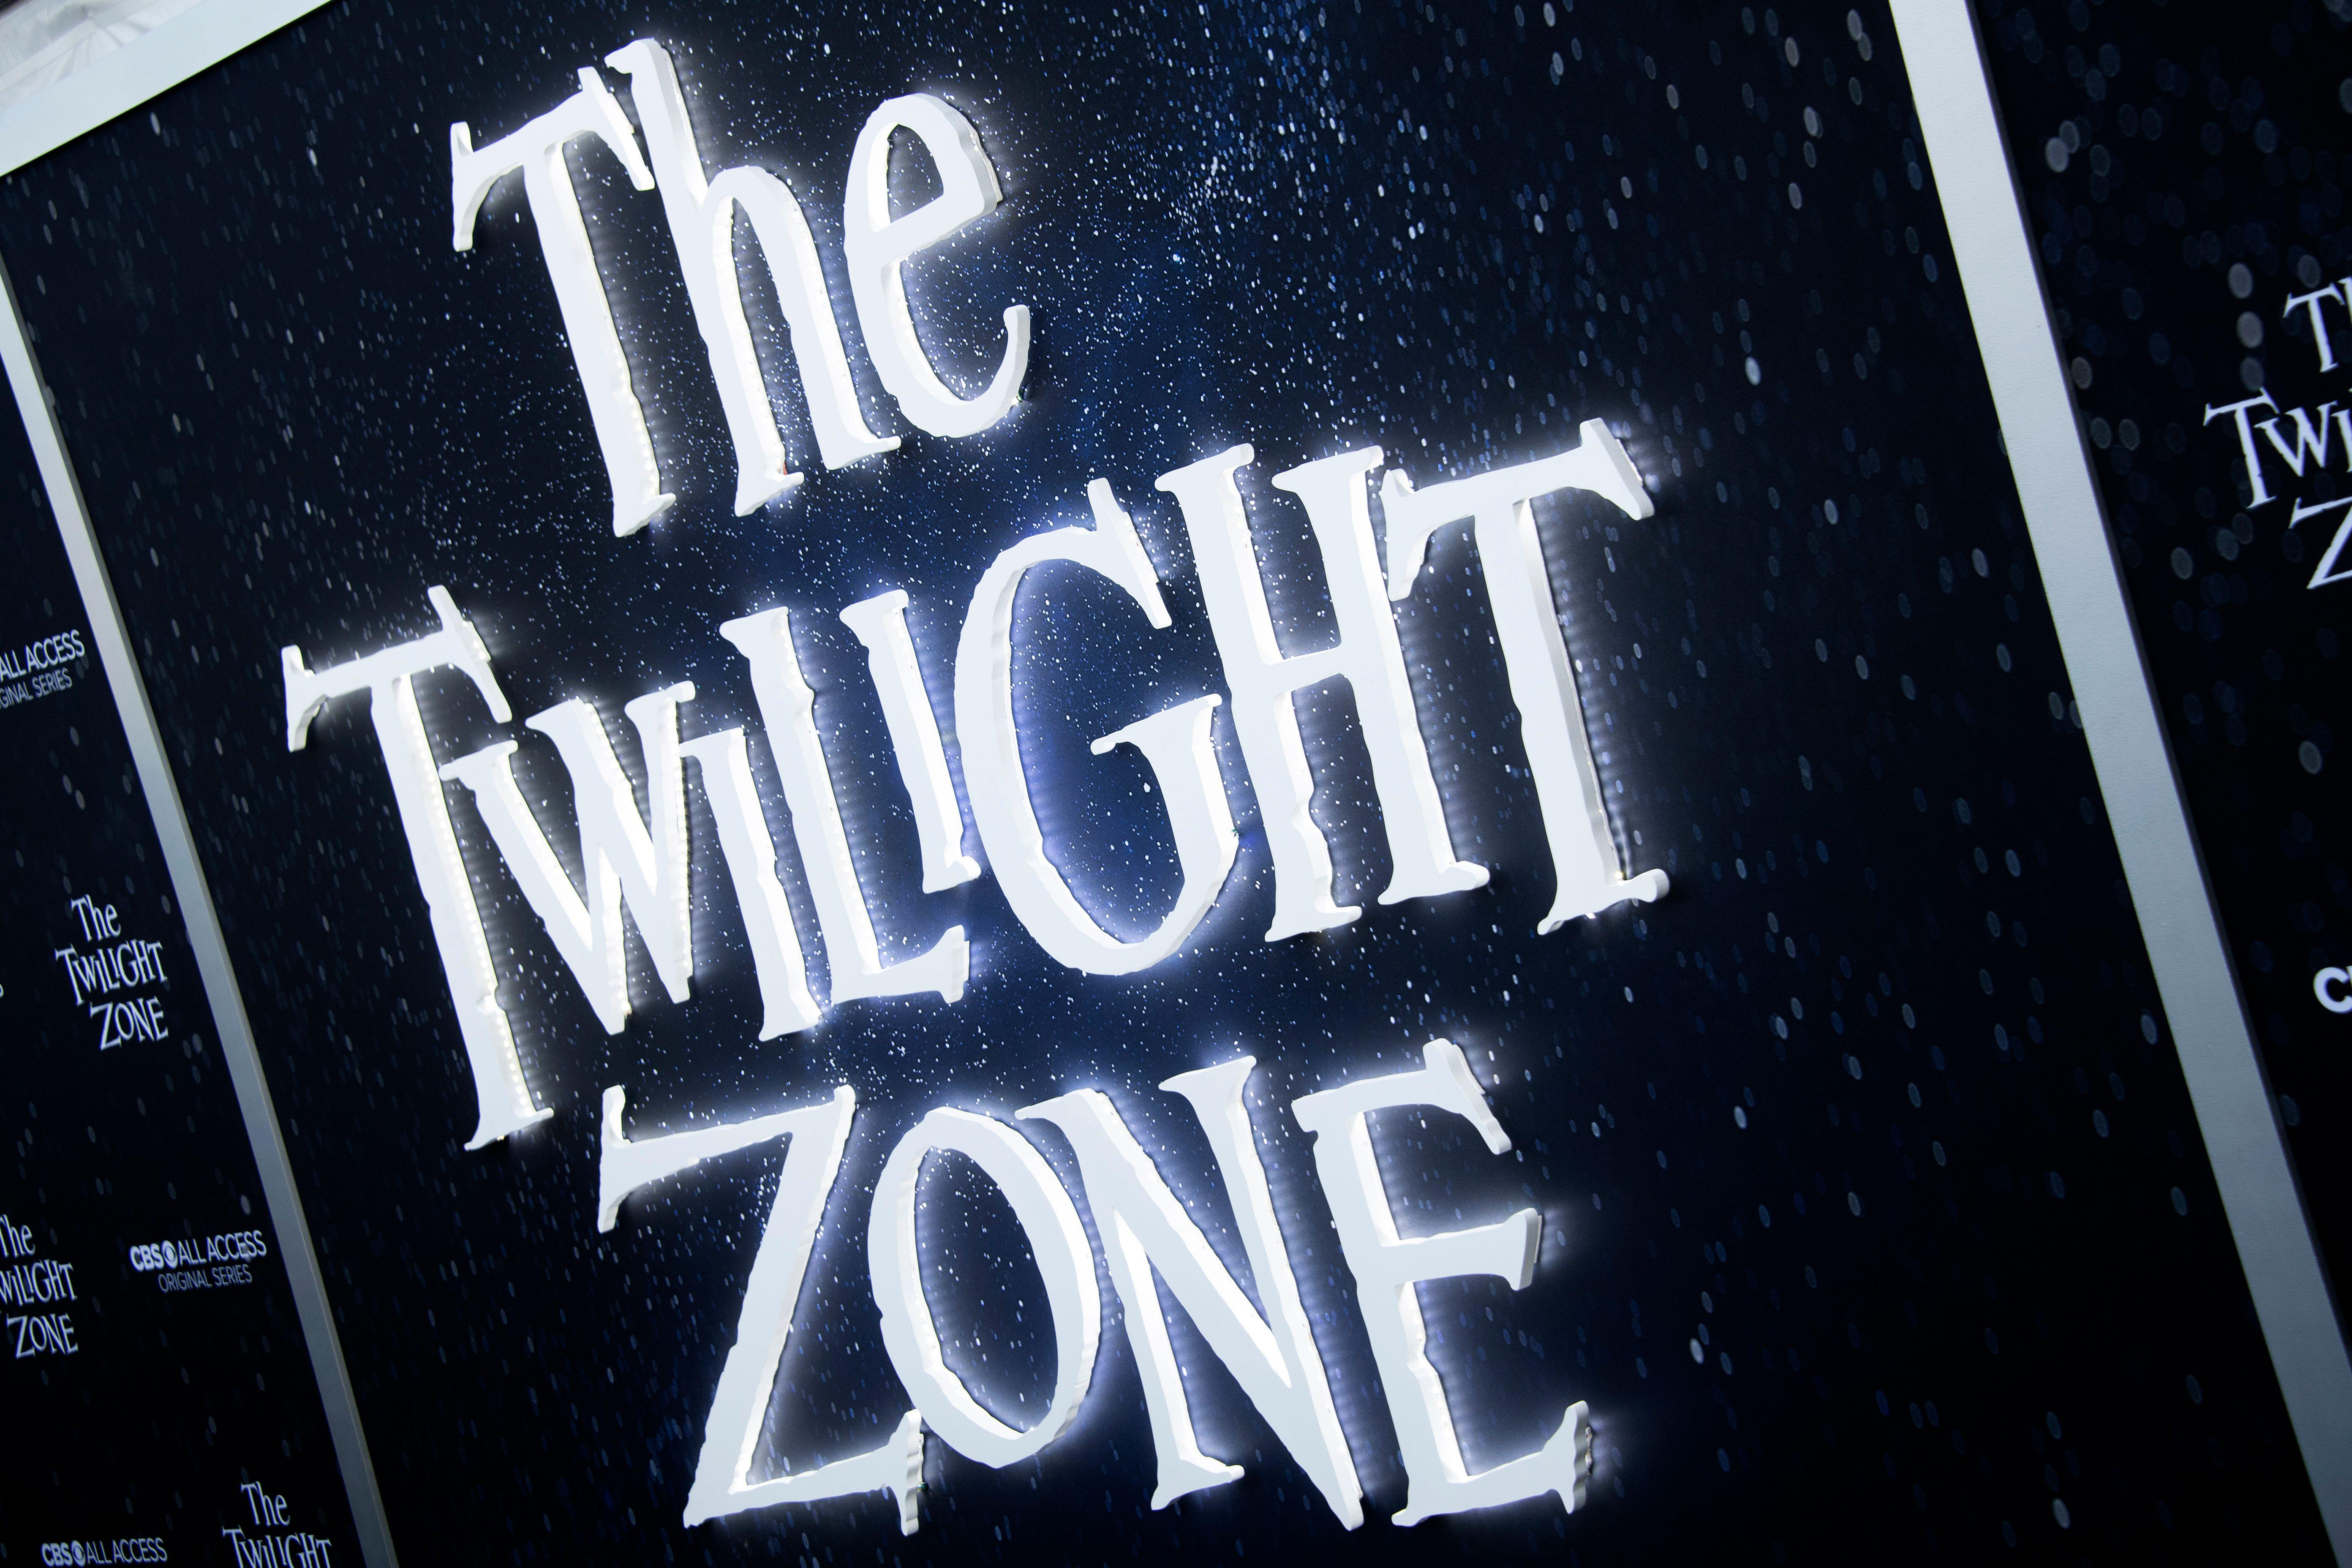 A sign on the red carpet at the premiere of the Twilight Zone displays the show's original logo.